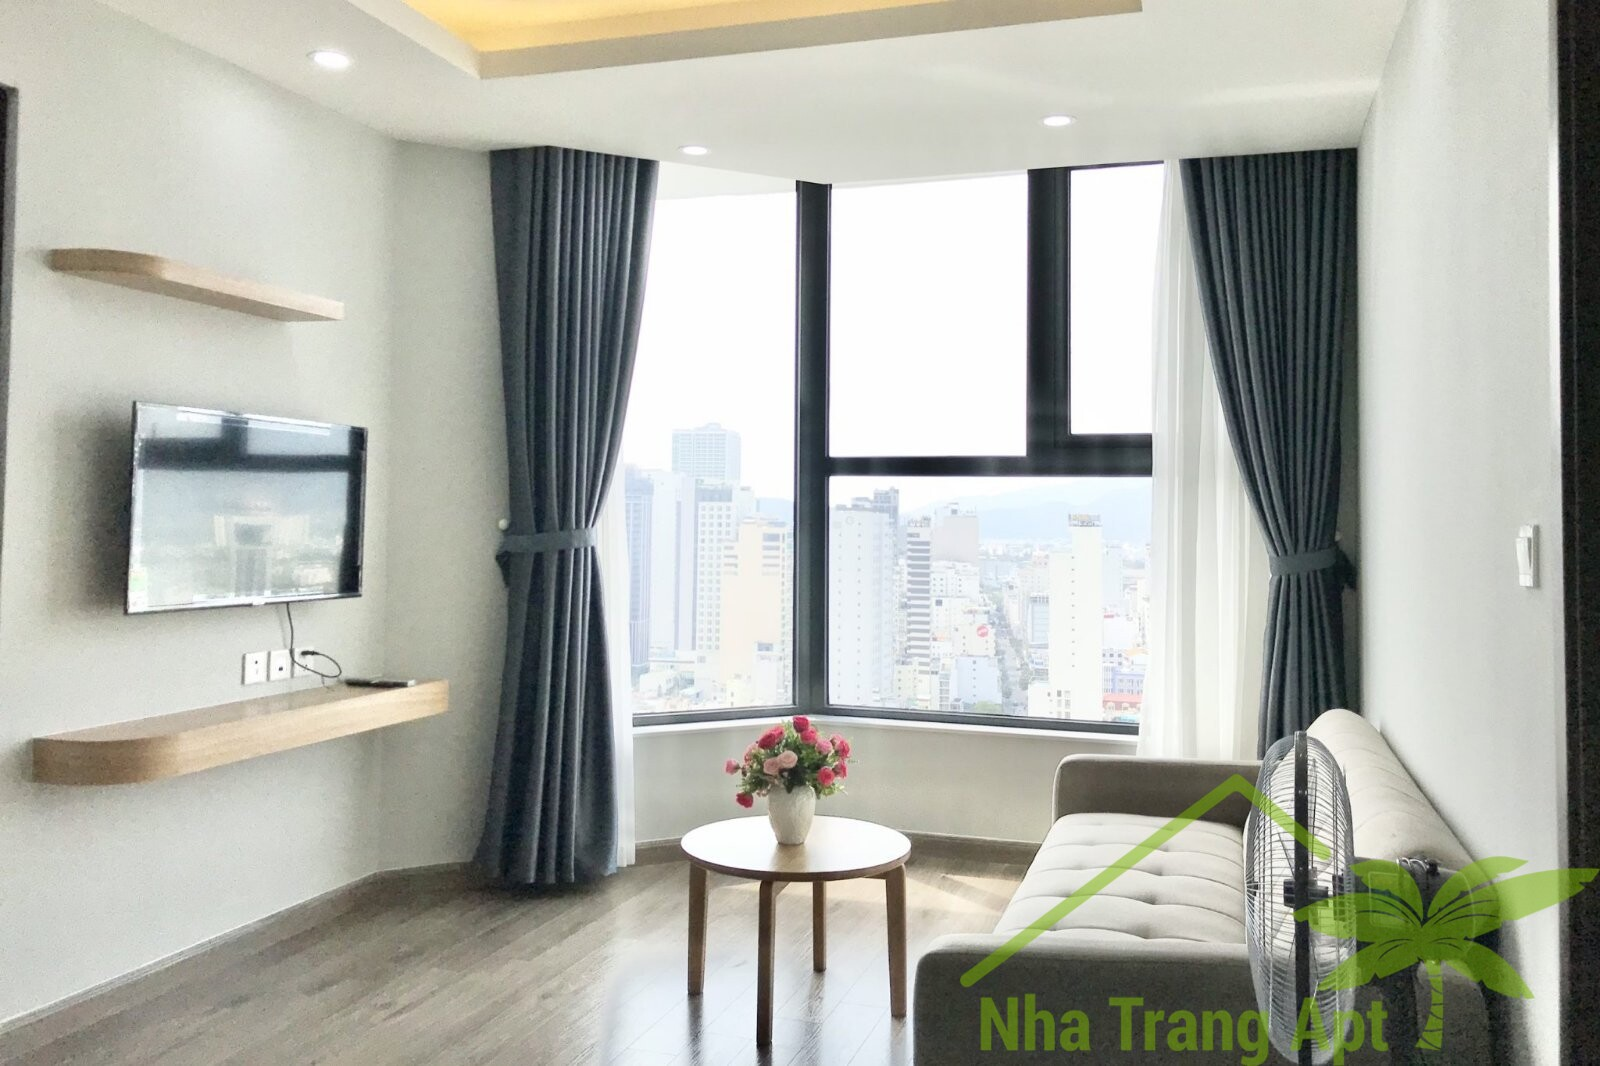 2 br apartment for rent in Hud building Nha Trang A614